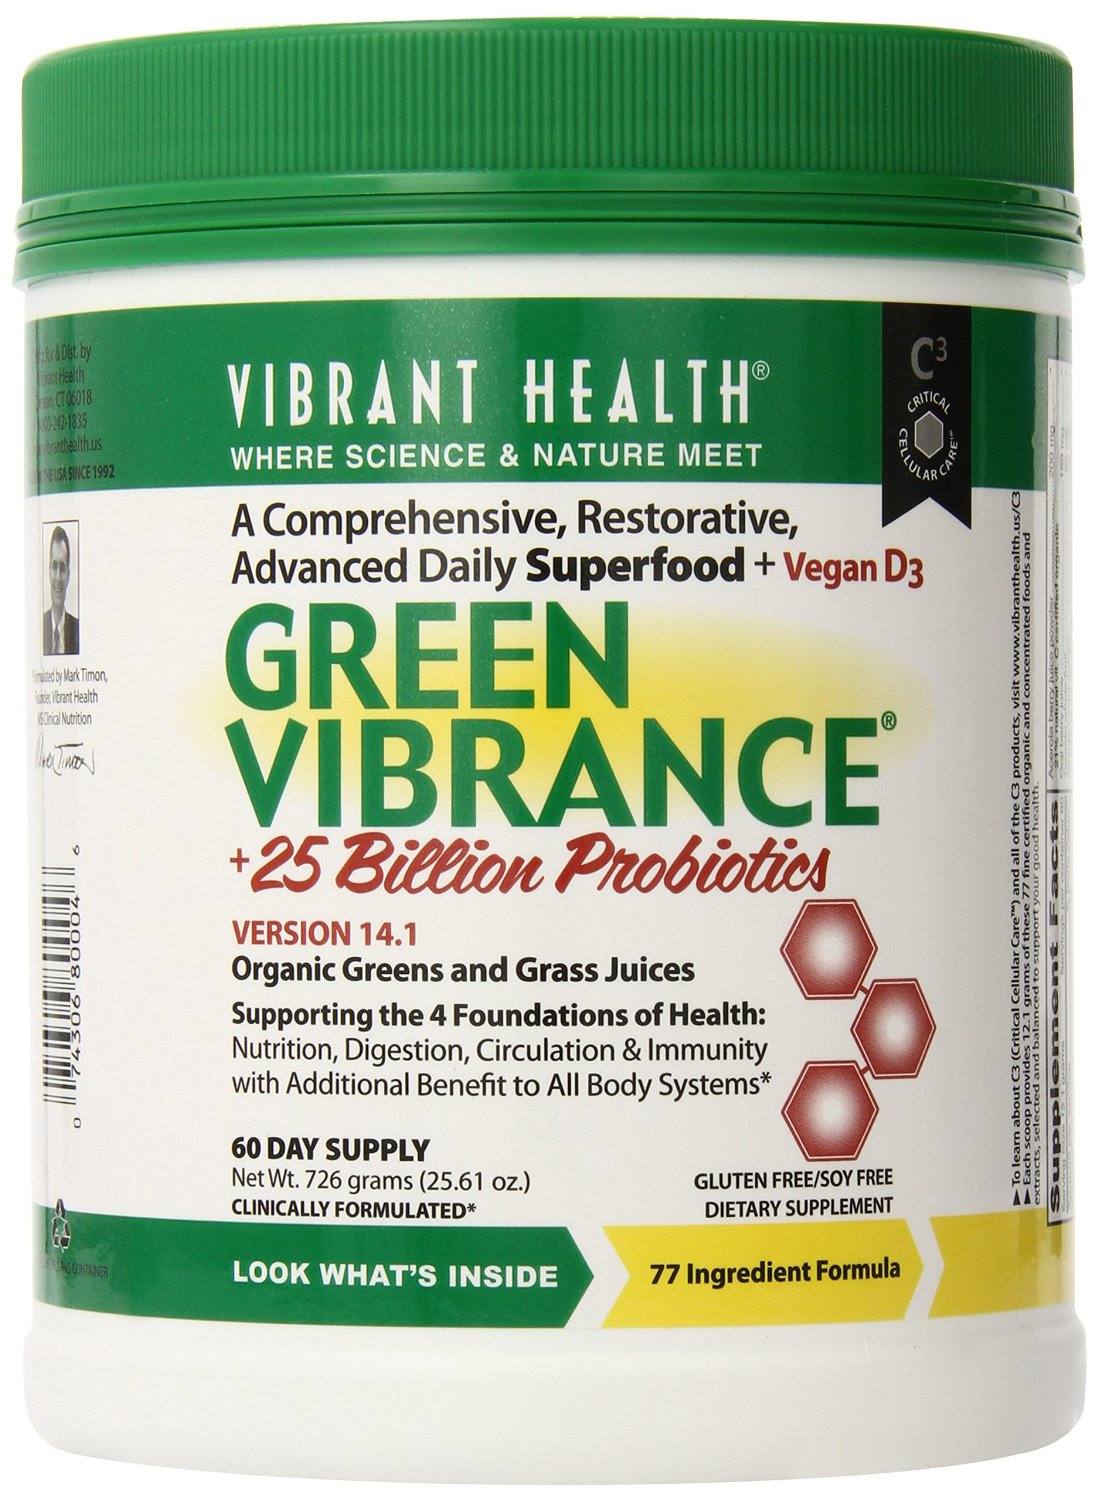 Green Vibrance is an   award winning green superfood  , which    has replaced my daily multi-vitamin.  It contains 77 different ingredients, as well as 25 billion probiotics from 12 different stains (  Read More  ). Most importantly, because it's sourced from real food,it is better for you than the synthetic vitamins you're likely taking and has much higher absorption rates.